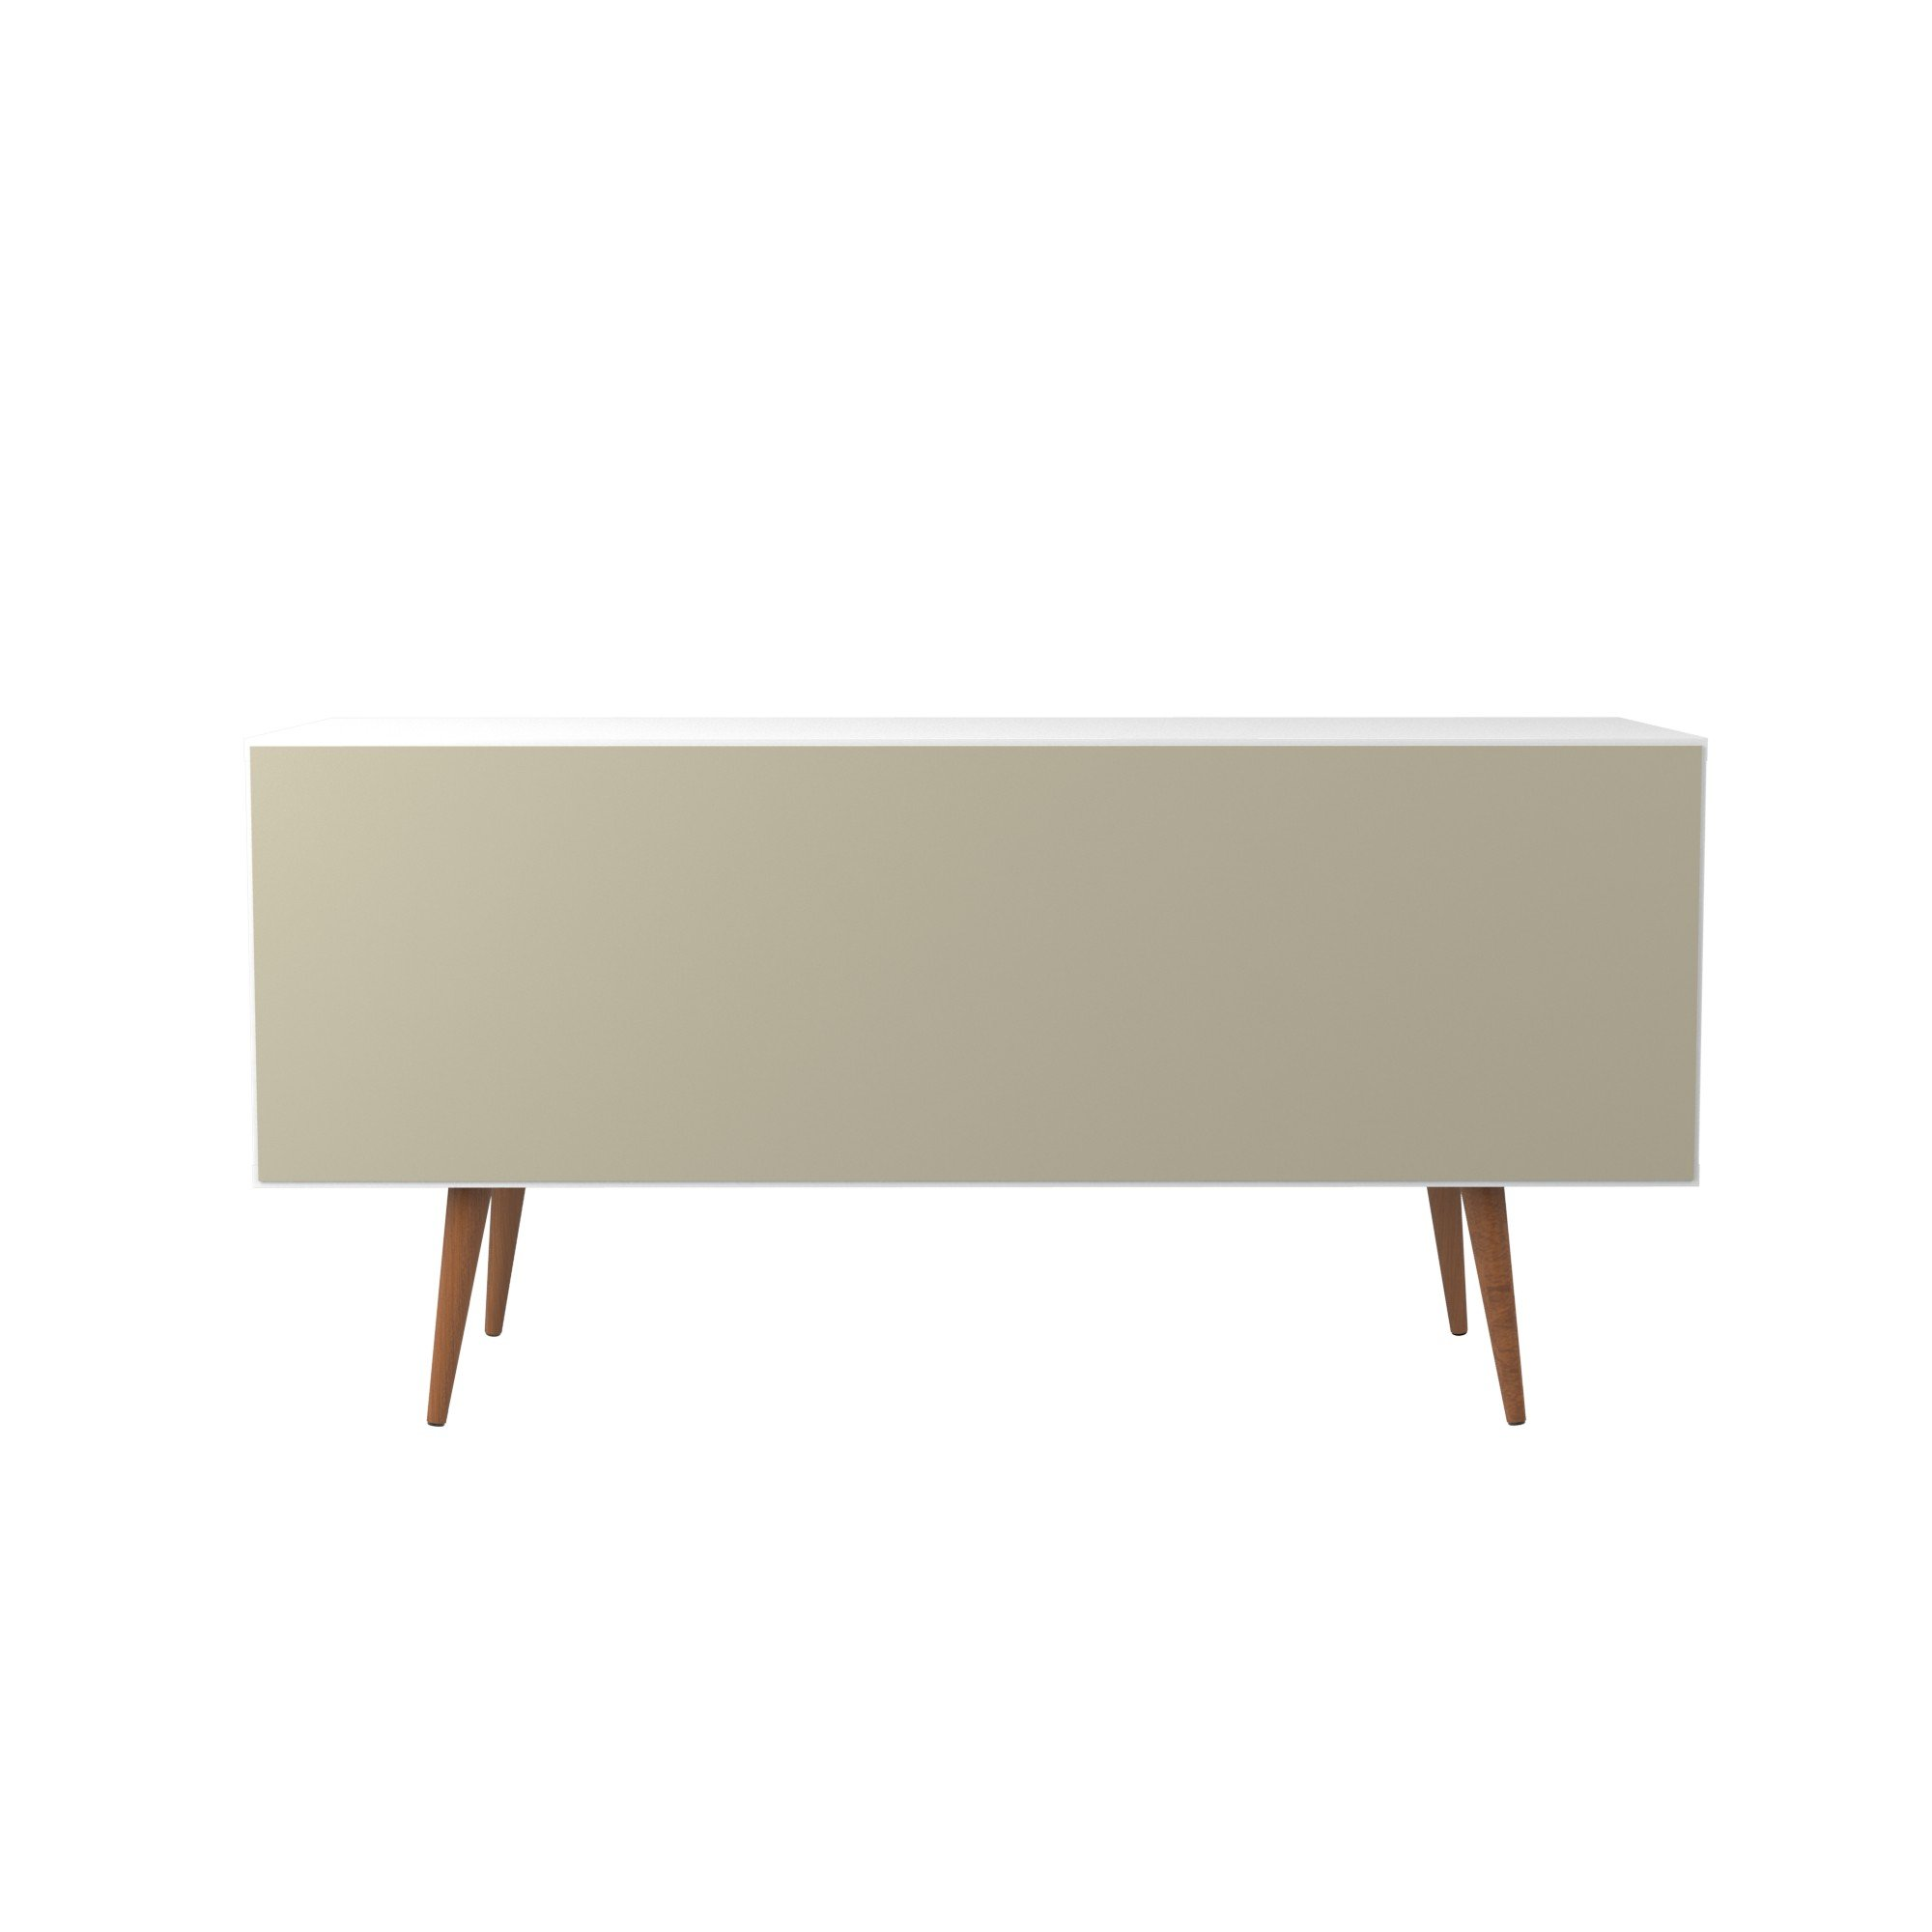 Manhattan Comfort Utopia Collection Mid Century Modern Sideboard Buffet Stand With 4 Bottle Wine Rack, Cabinet and 3 Drawers, Splayed Legs, White by Manhattan Comfort (Image #8)